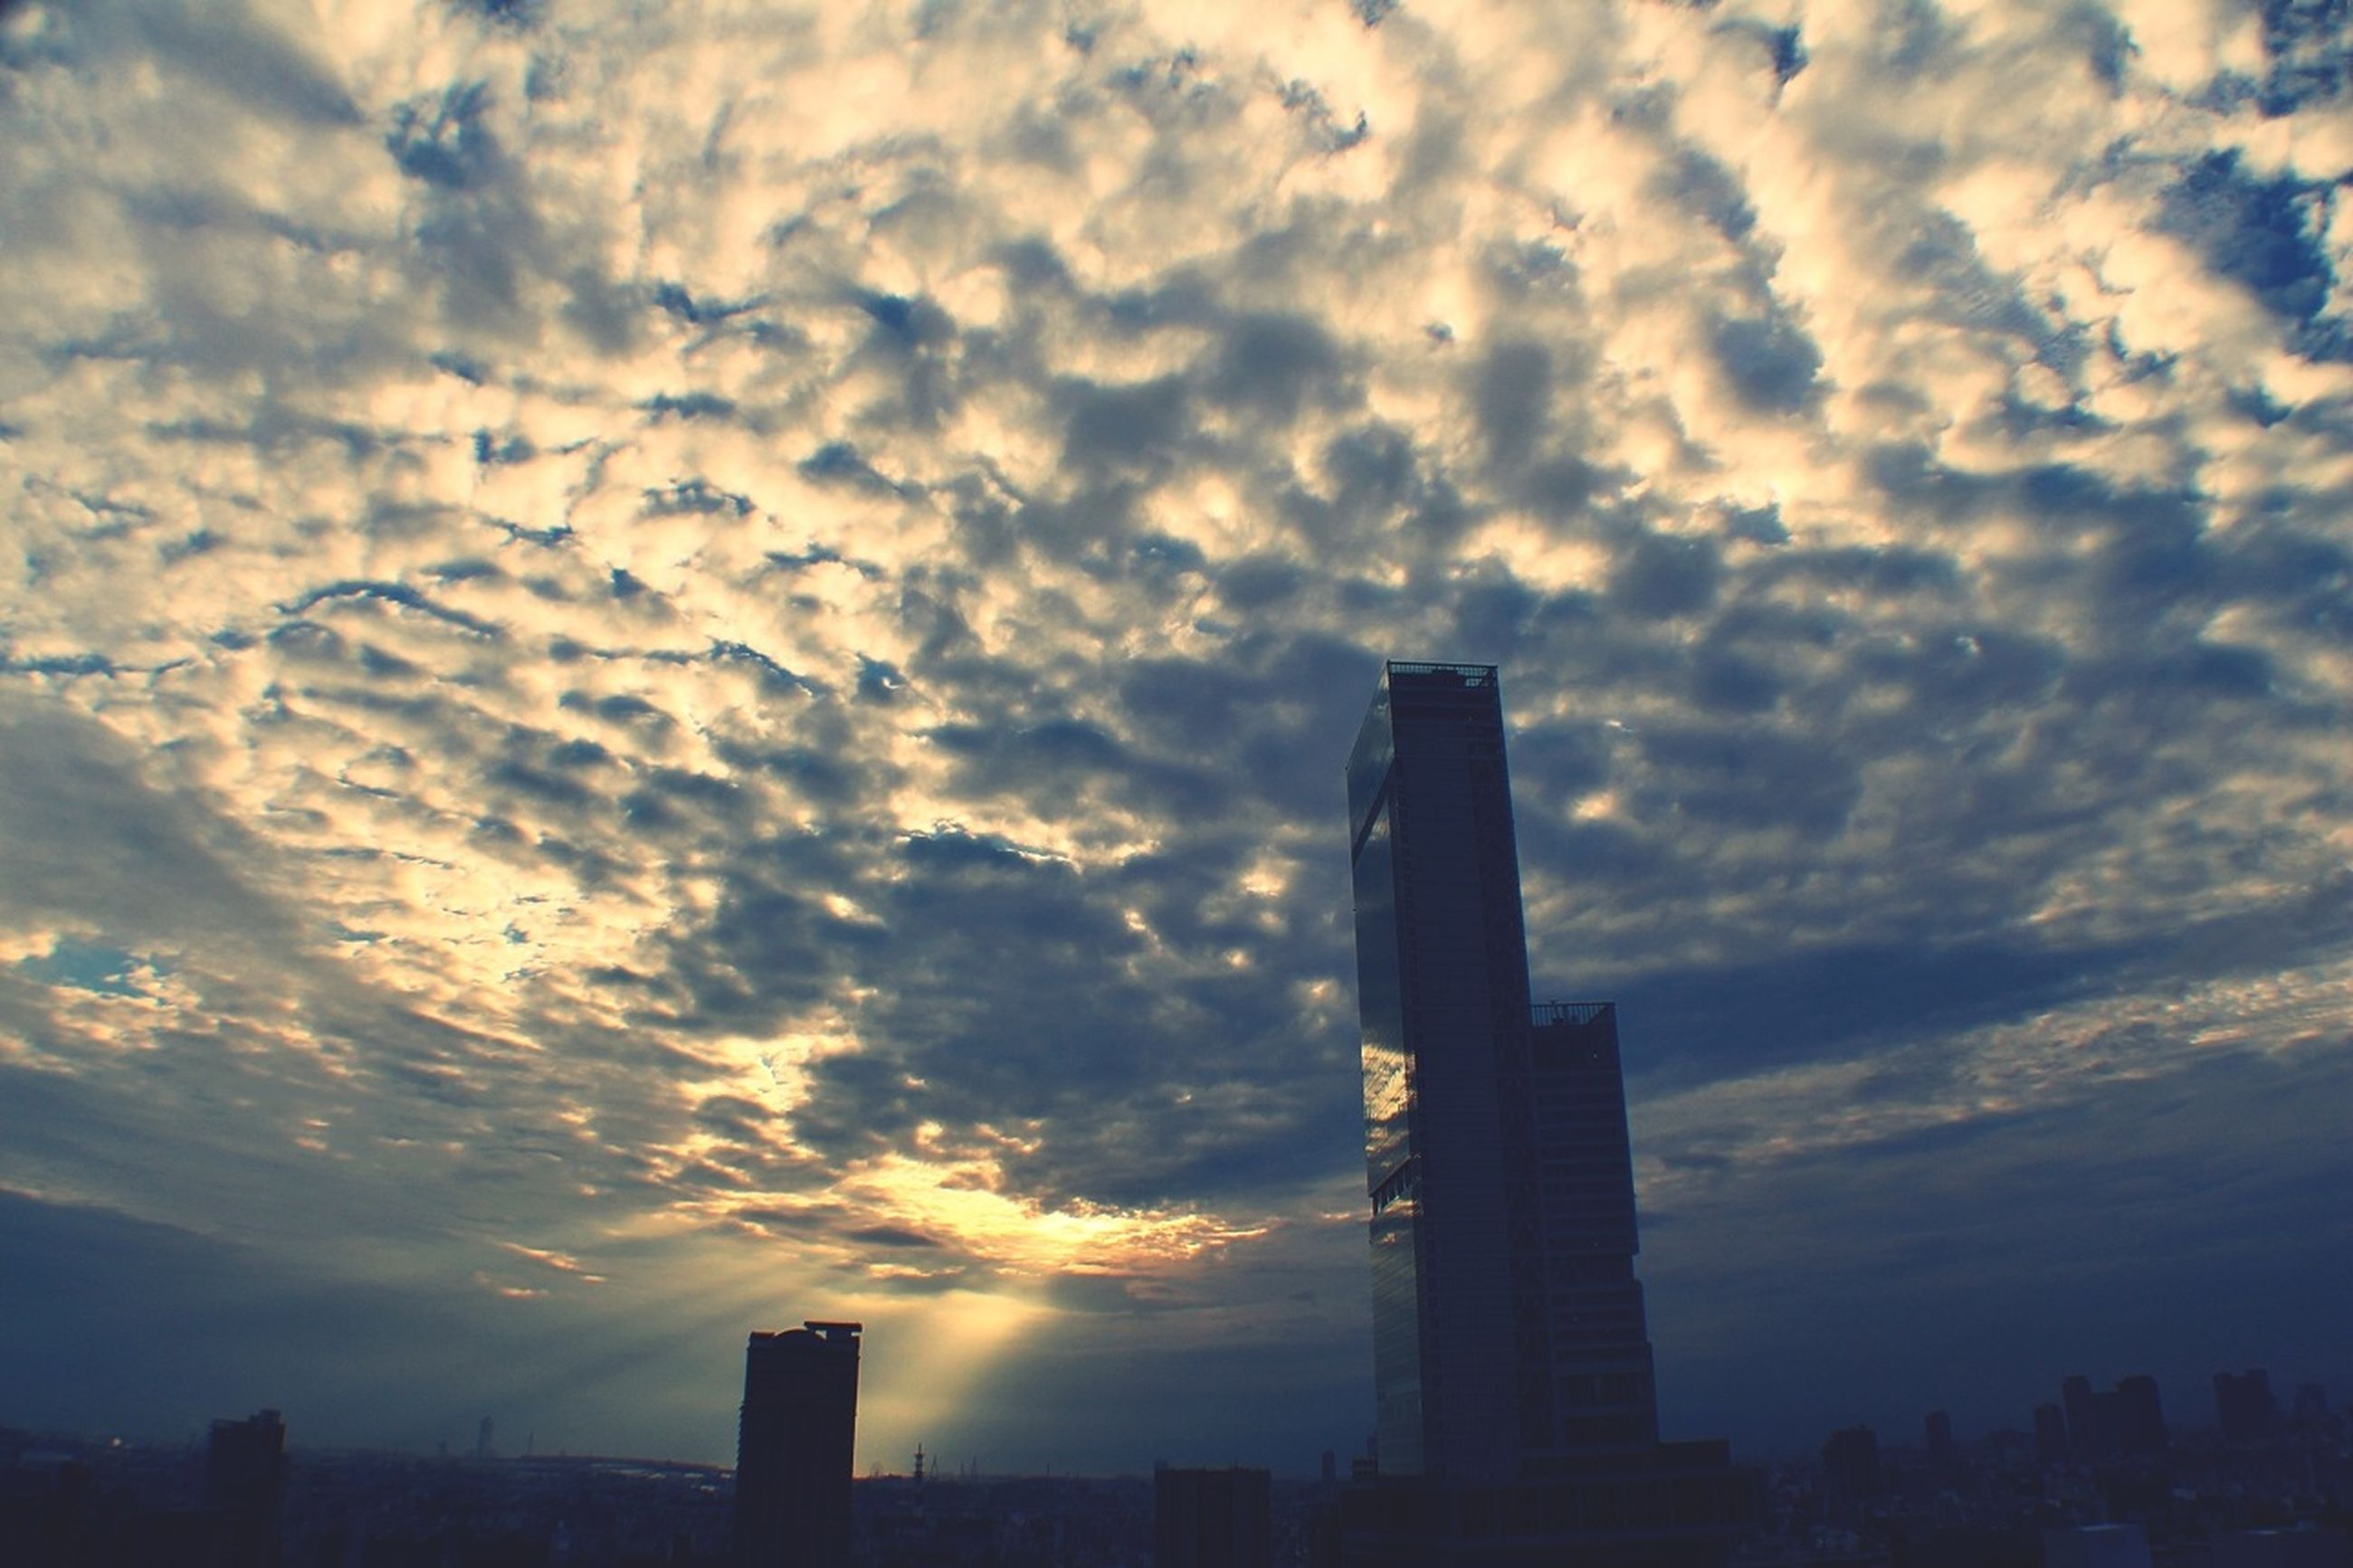 building exterior, architecture, sunset, sky, built structure, city, cloud - sky, silhouette, skyscraper, cloudy, cityscape, cloud, urban skyline, tall - high, tower, building, orange color, low angle view, office building, modern